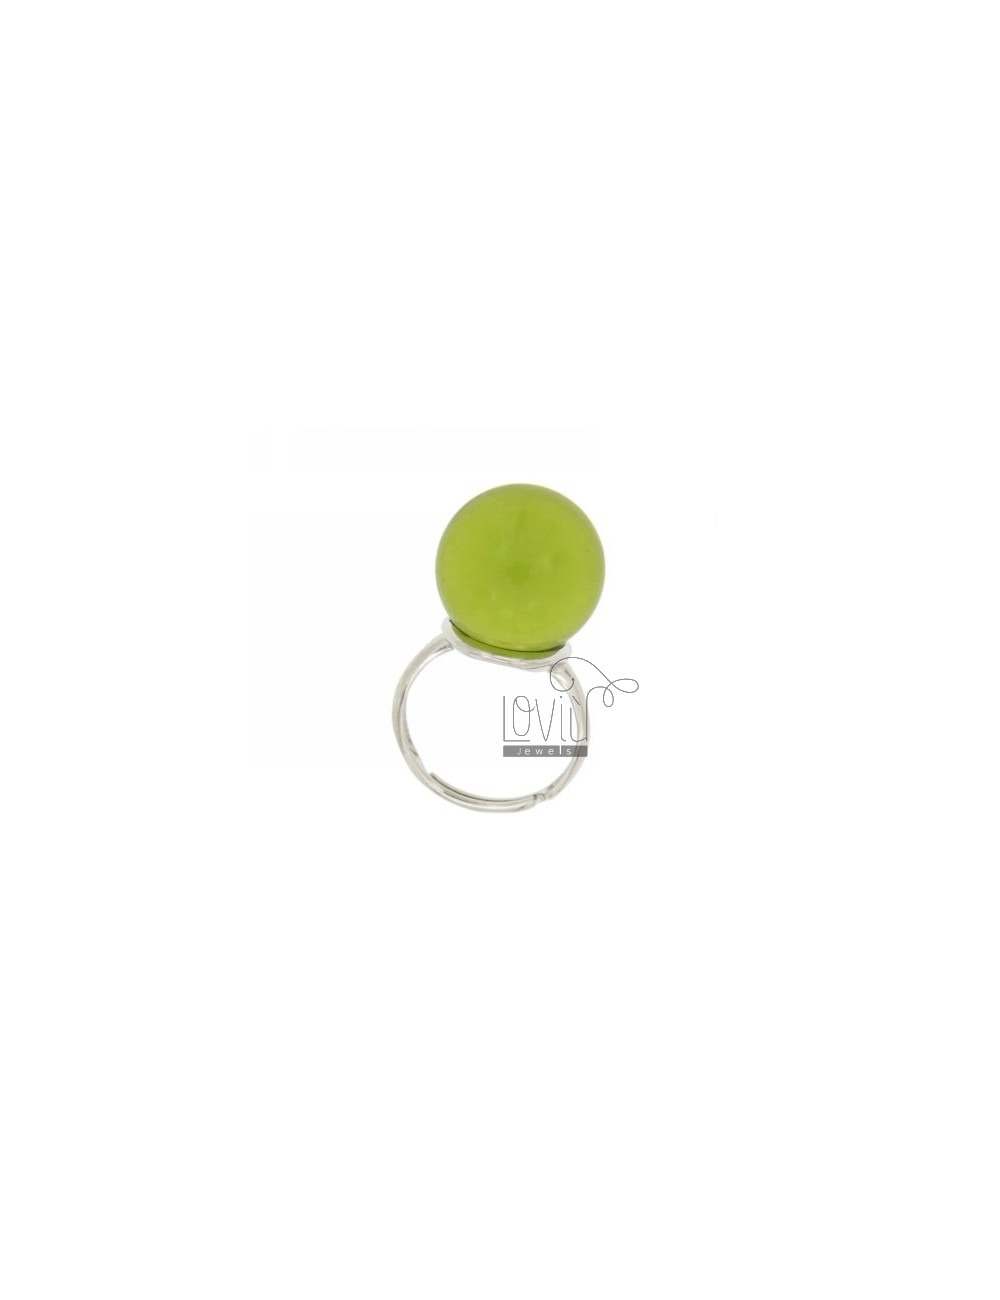 BALL RING WITH STONE HYDROTHERMAL 16 MM COLOR PEA GREEN WITH TRANSPARENT BASE 23 SILVER RHODIUM 925 TITLE SIZE ADJUSTABLE